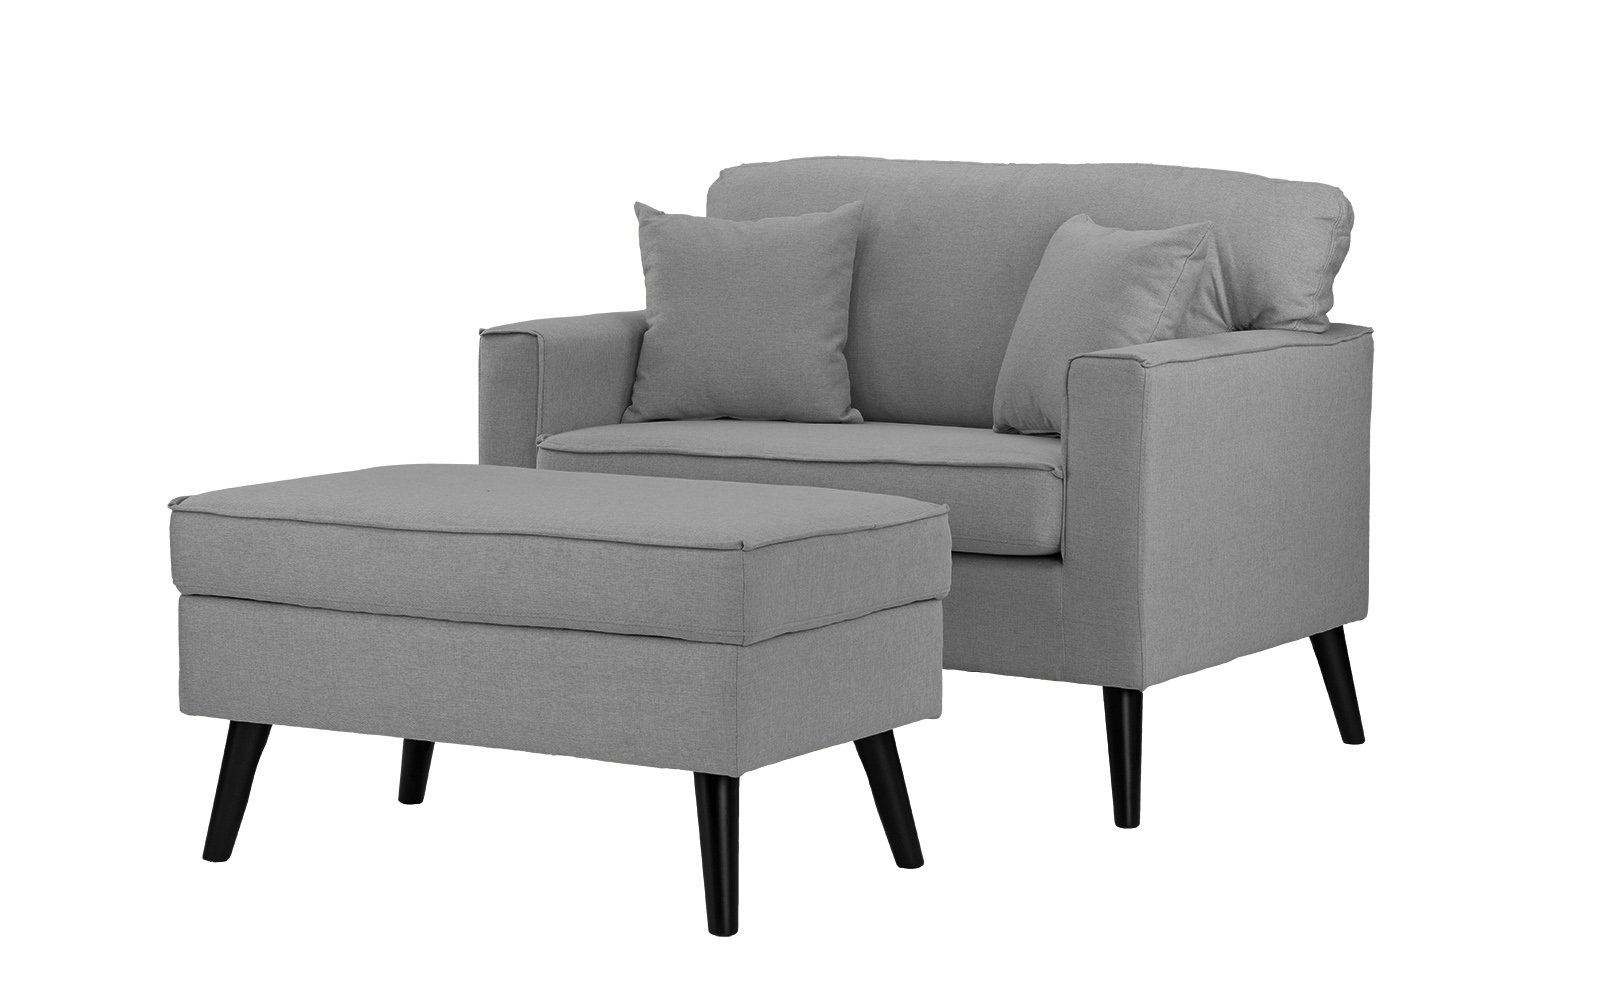 Sofa Chair With Ottoman Throughout Recent Timothy Modern Accent Chair With Footrest And Storage Compartment (Gallery 18 of 20)